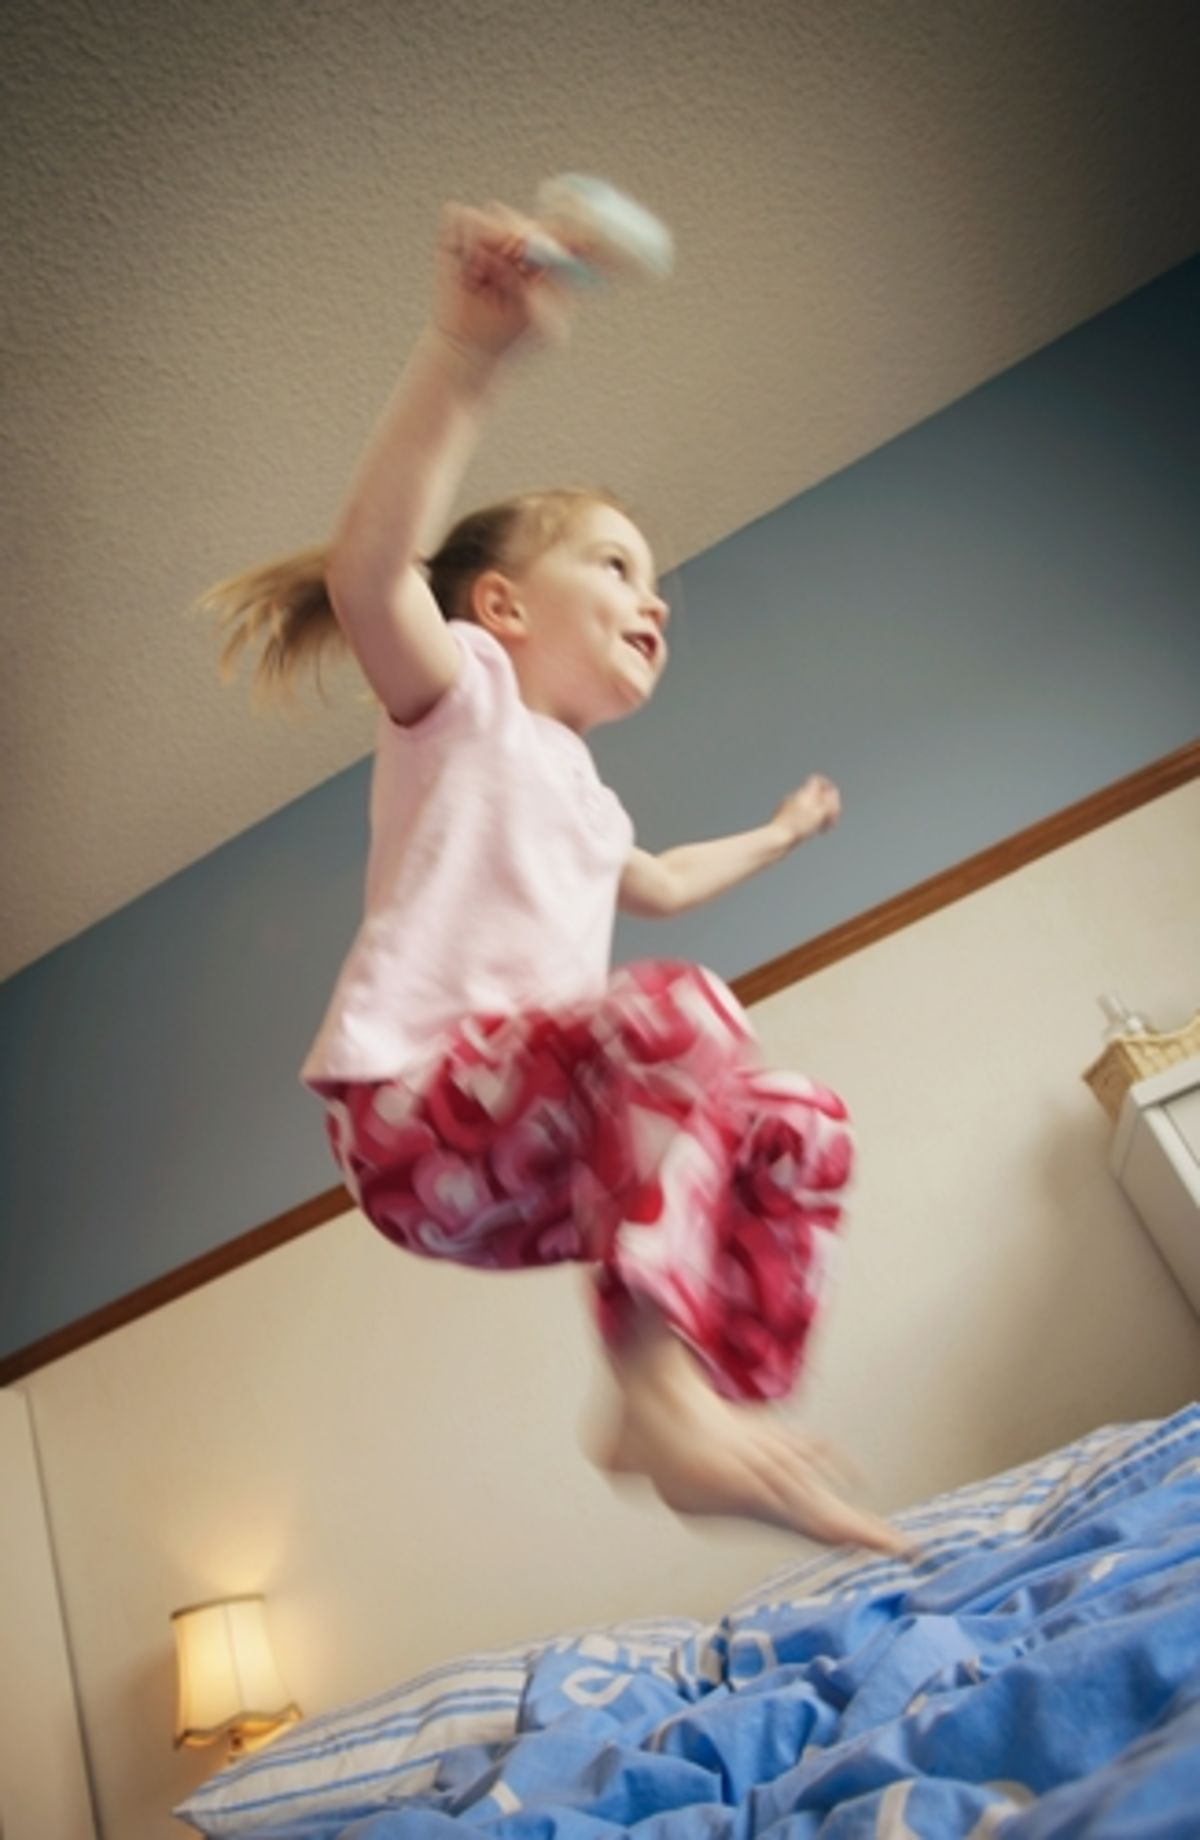 Not Naughty: 10 Ways Kids Appear to Be Acting Bad But Aren't